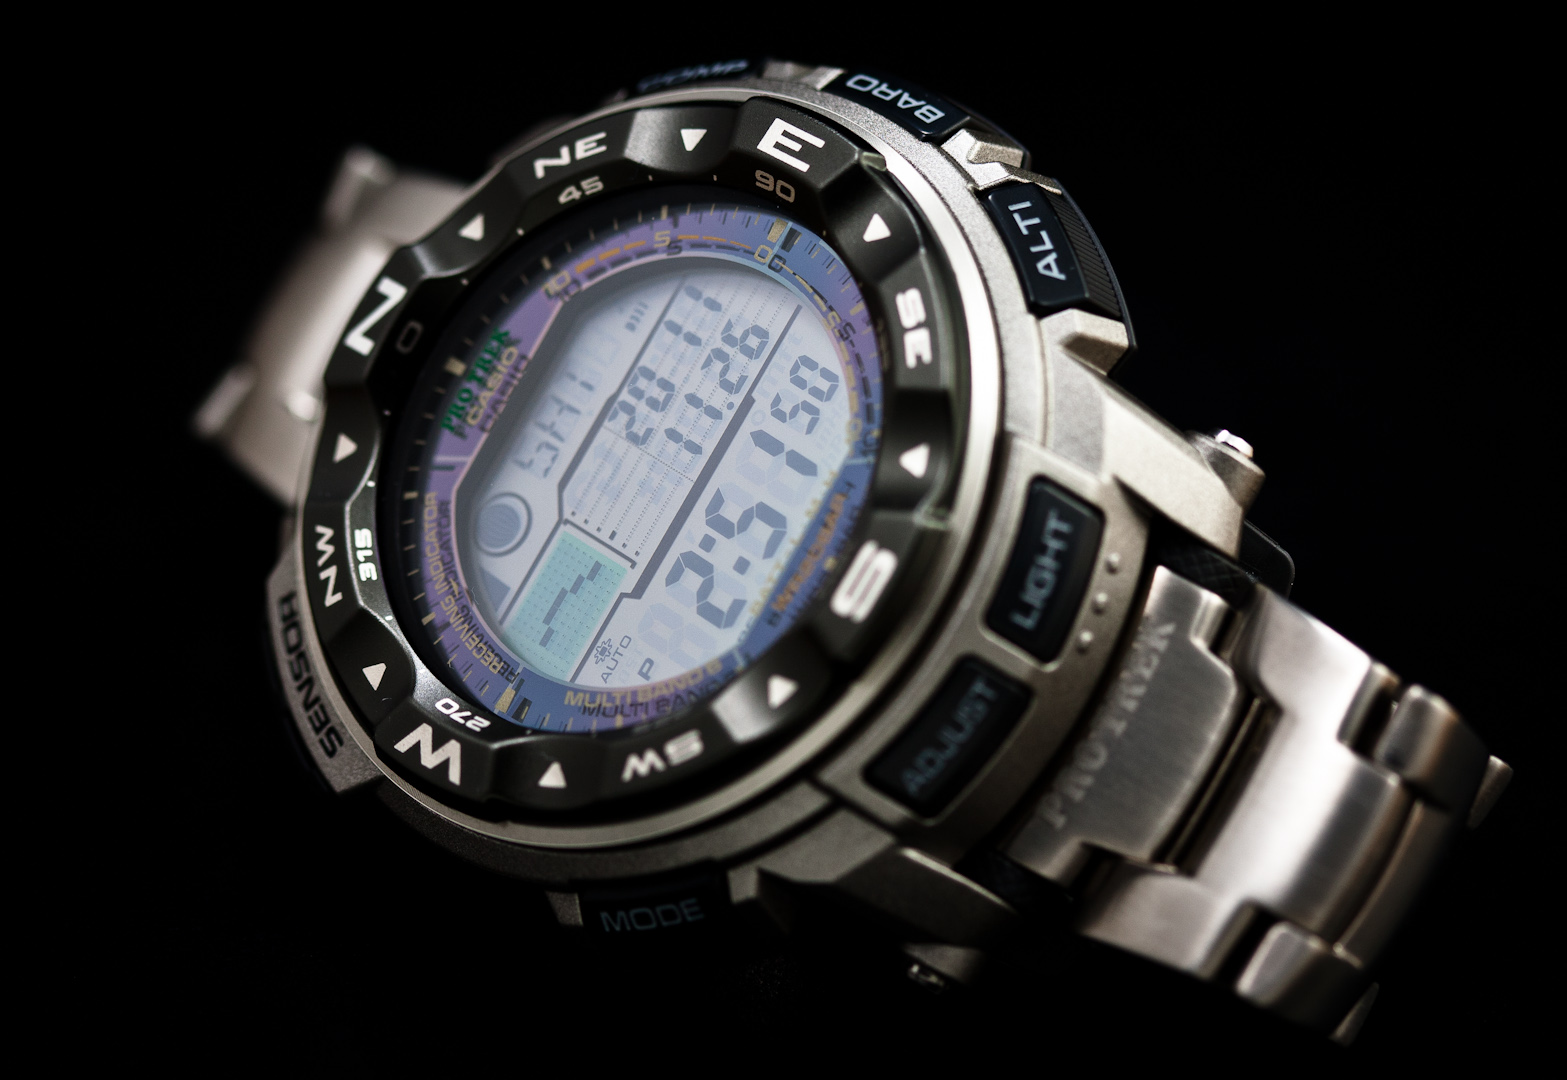 ProTrek PRW-2500 For All Purposes-1